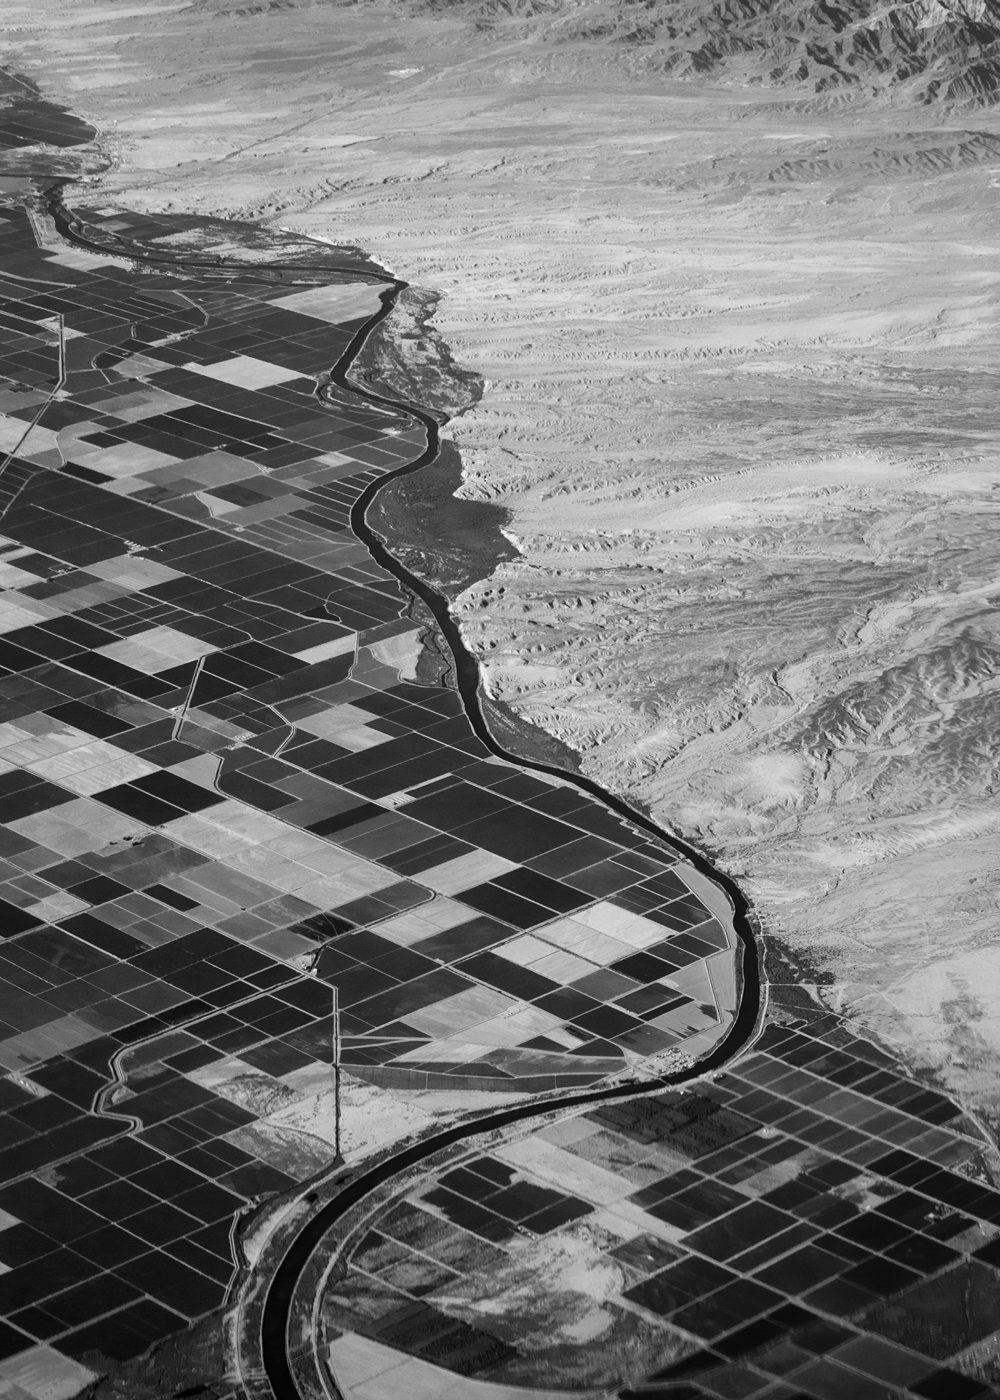 Colorado River Near Blythe